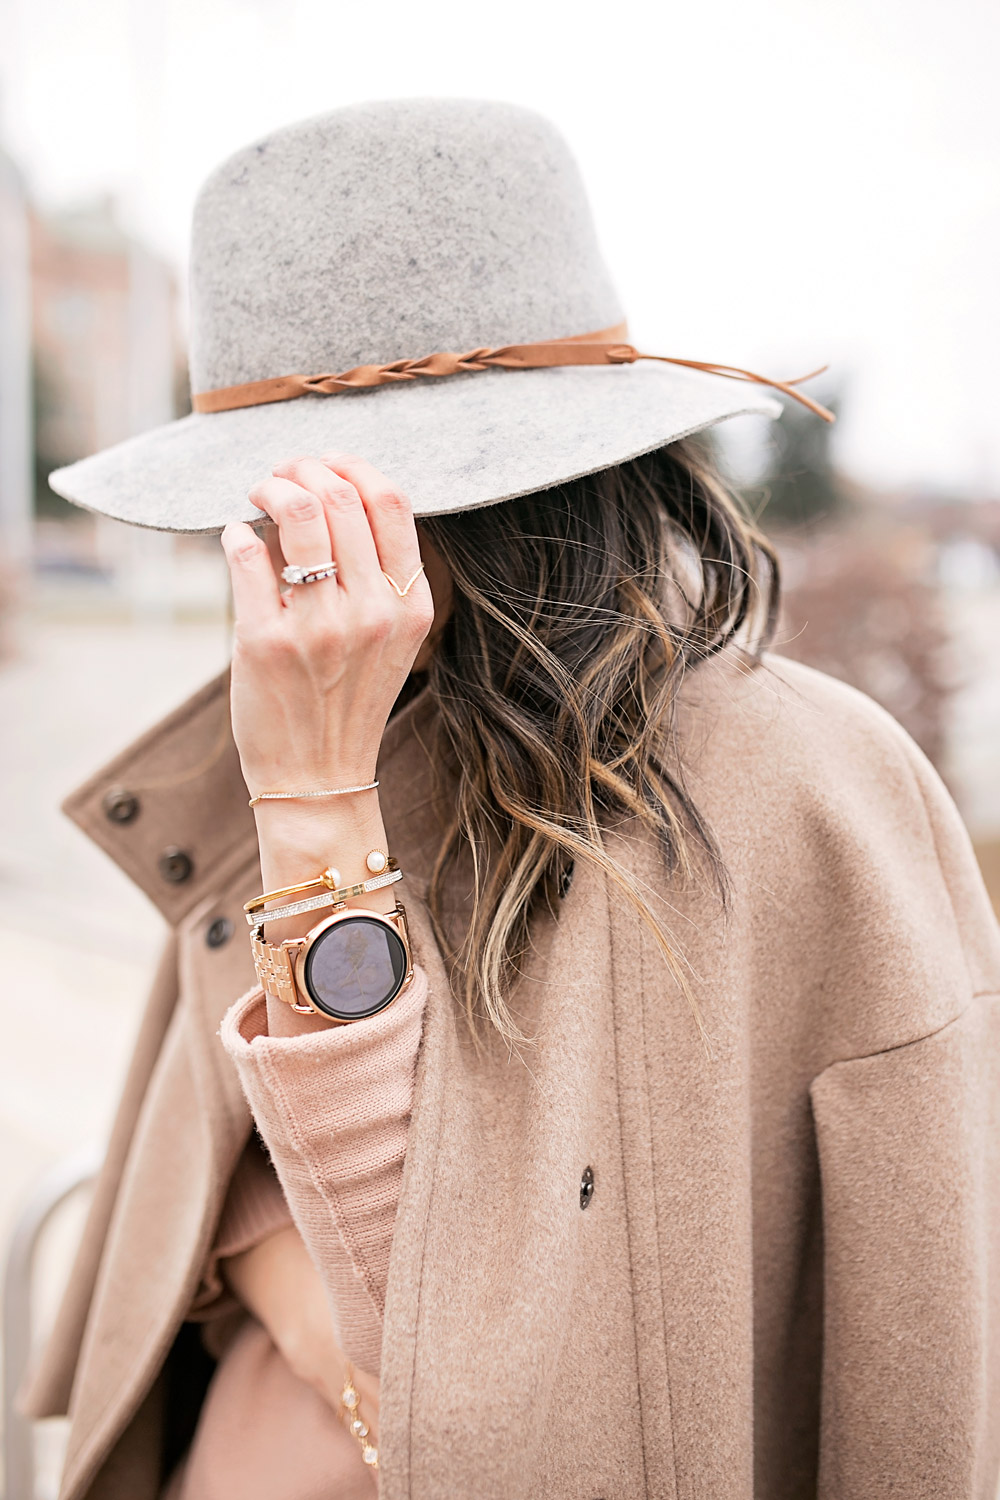 fossil q wander rose gold smartwatch, tan off the shoulder sweater with max mara coat,grey fedora